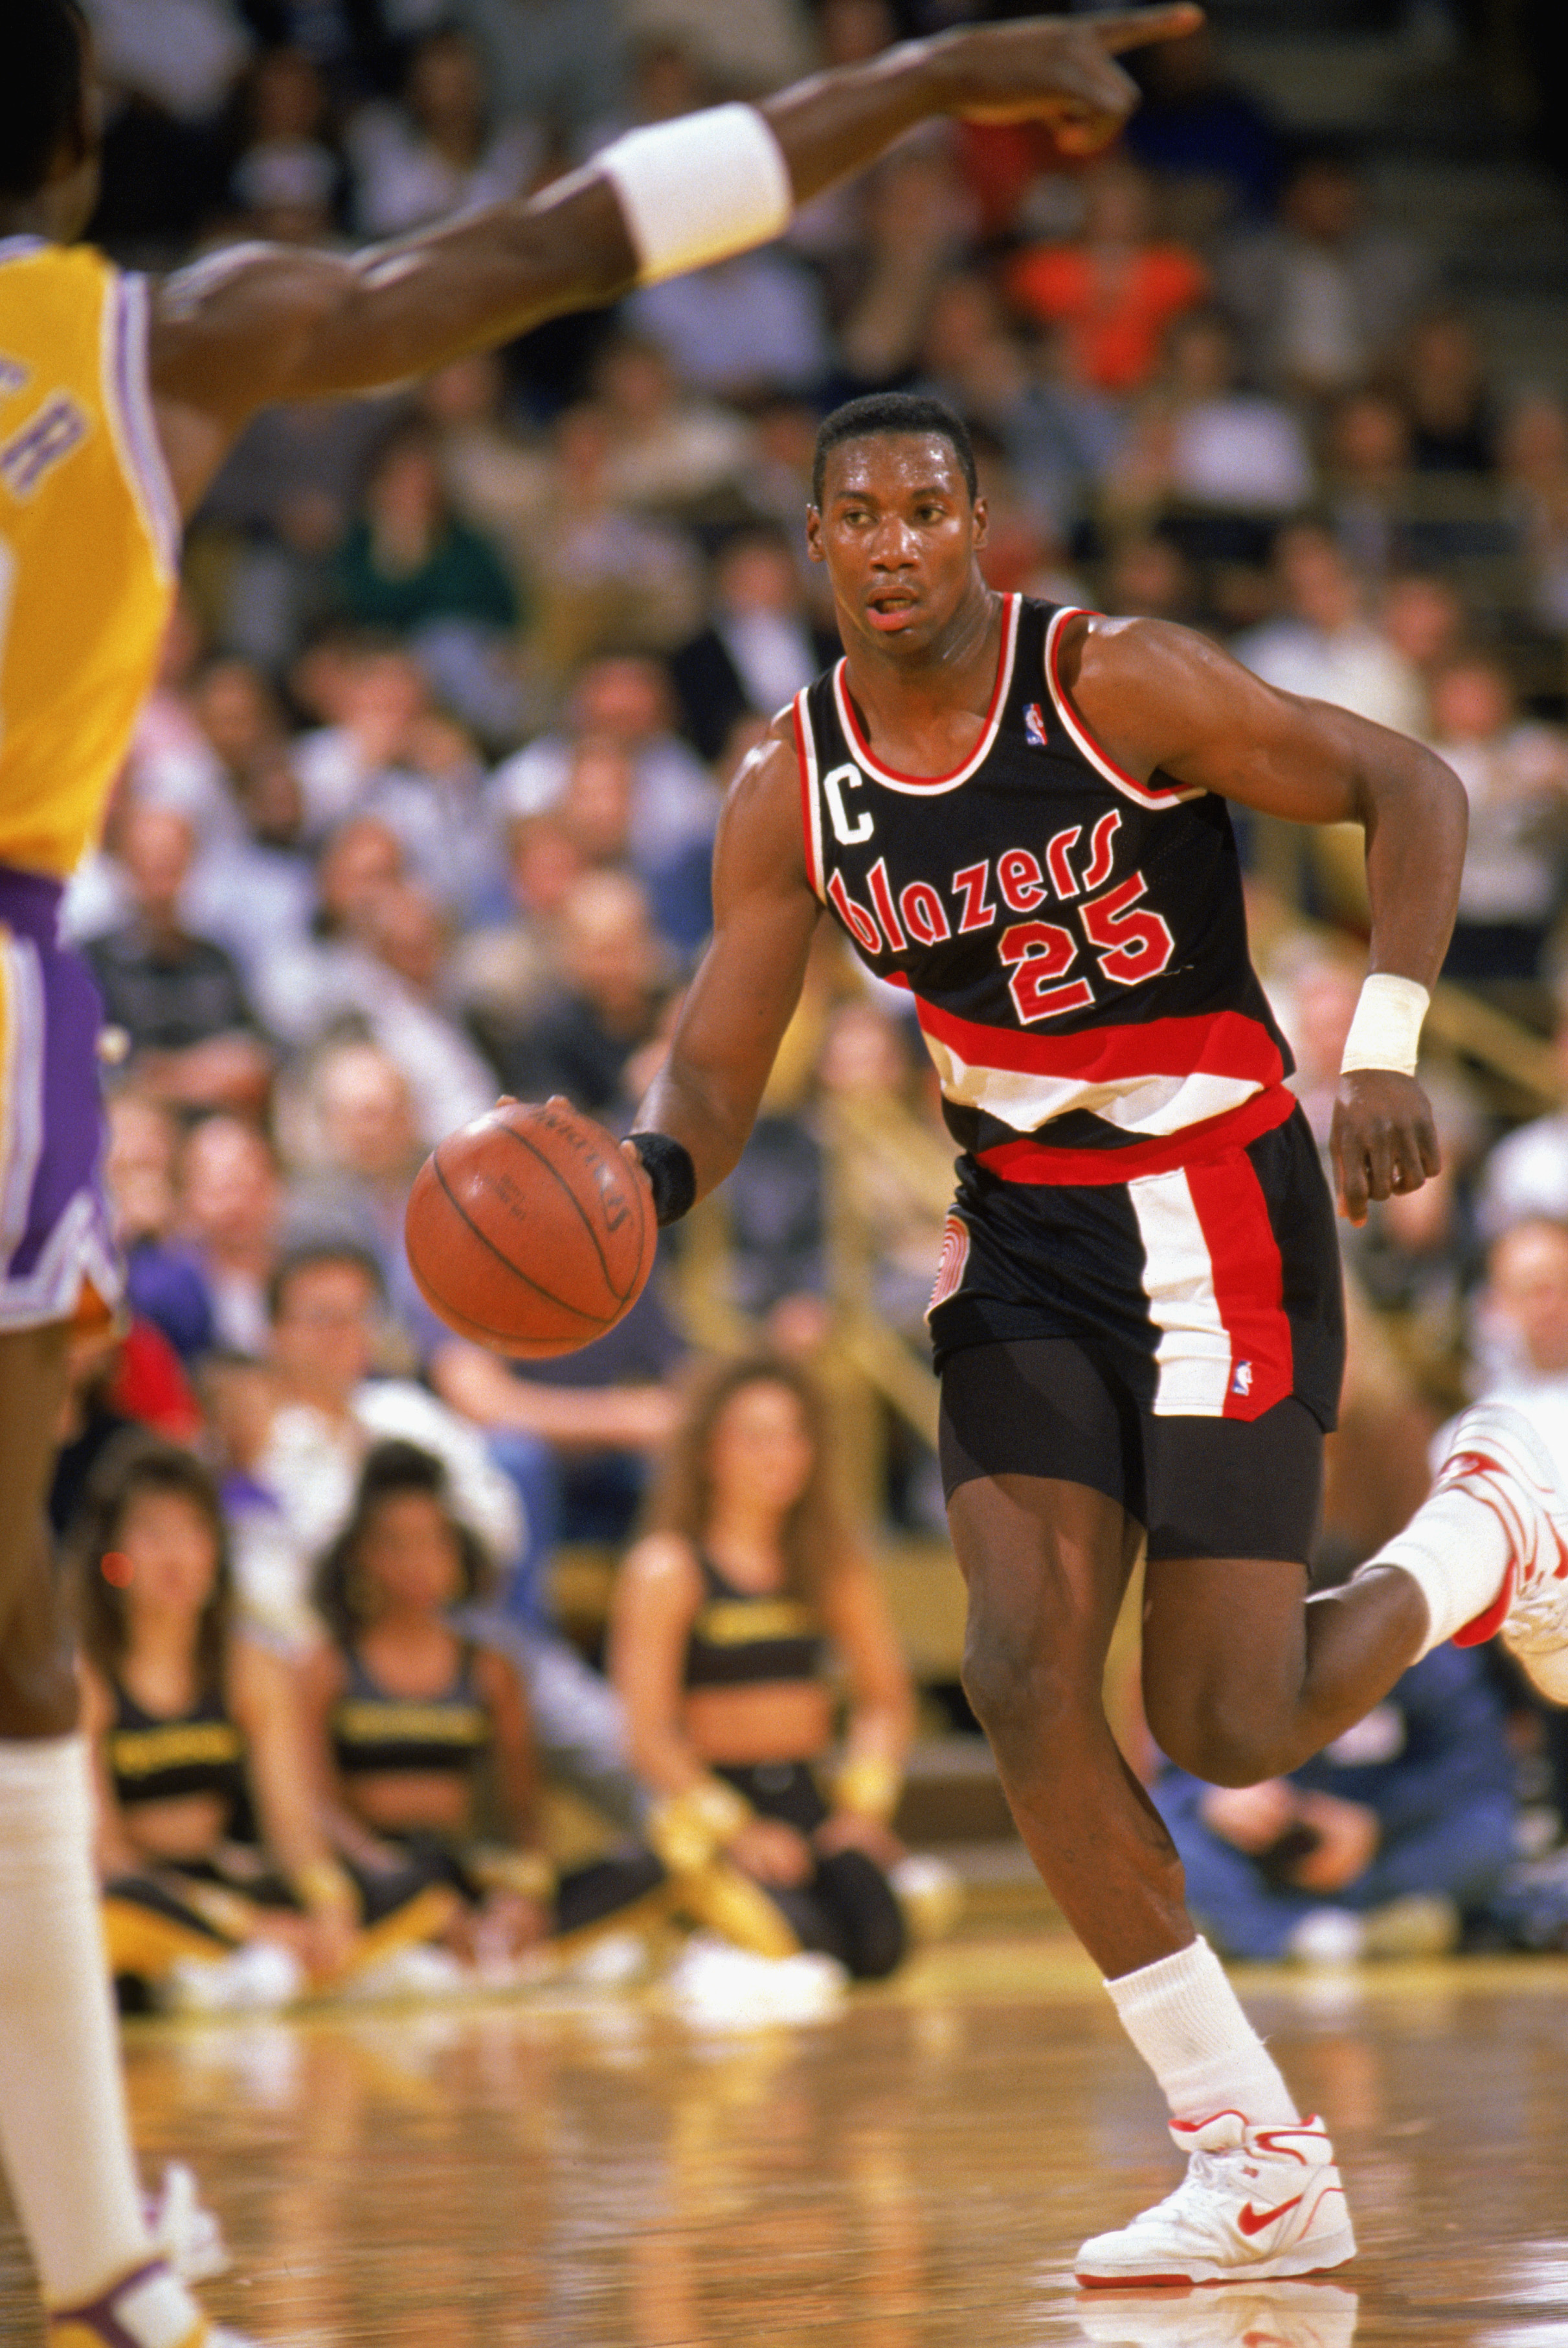 LOS ANGELES - 1988:  Jerome Kersey #25 of the Portland Trail Blazers drives against the Los Angeles Lakers during the 1988-1989 NBA season game at the Great Western Forum in Los Angeles, California.  (Photo by Mike Powell/Getty Images)